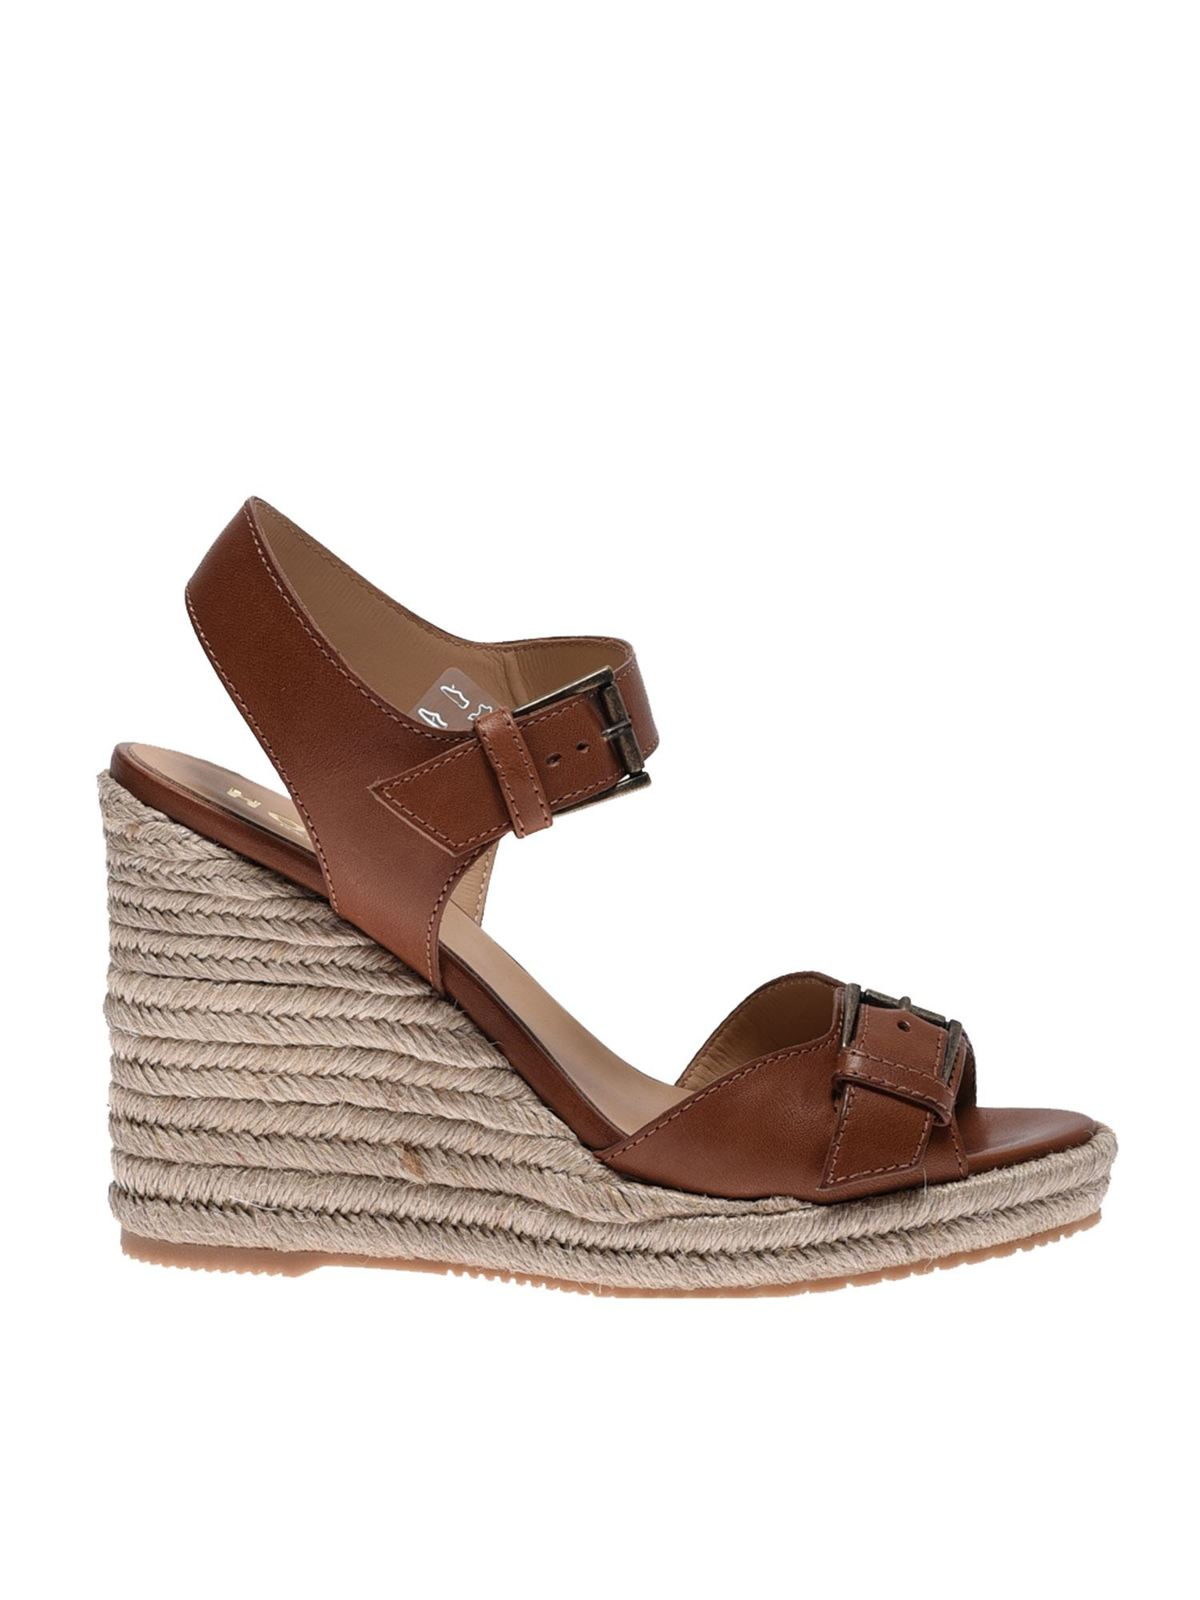 Hogan LEATHER AND ROPE WEDGES IN BROWN